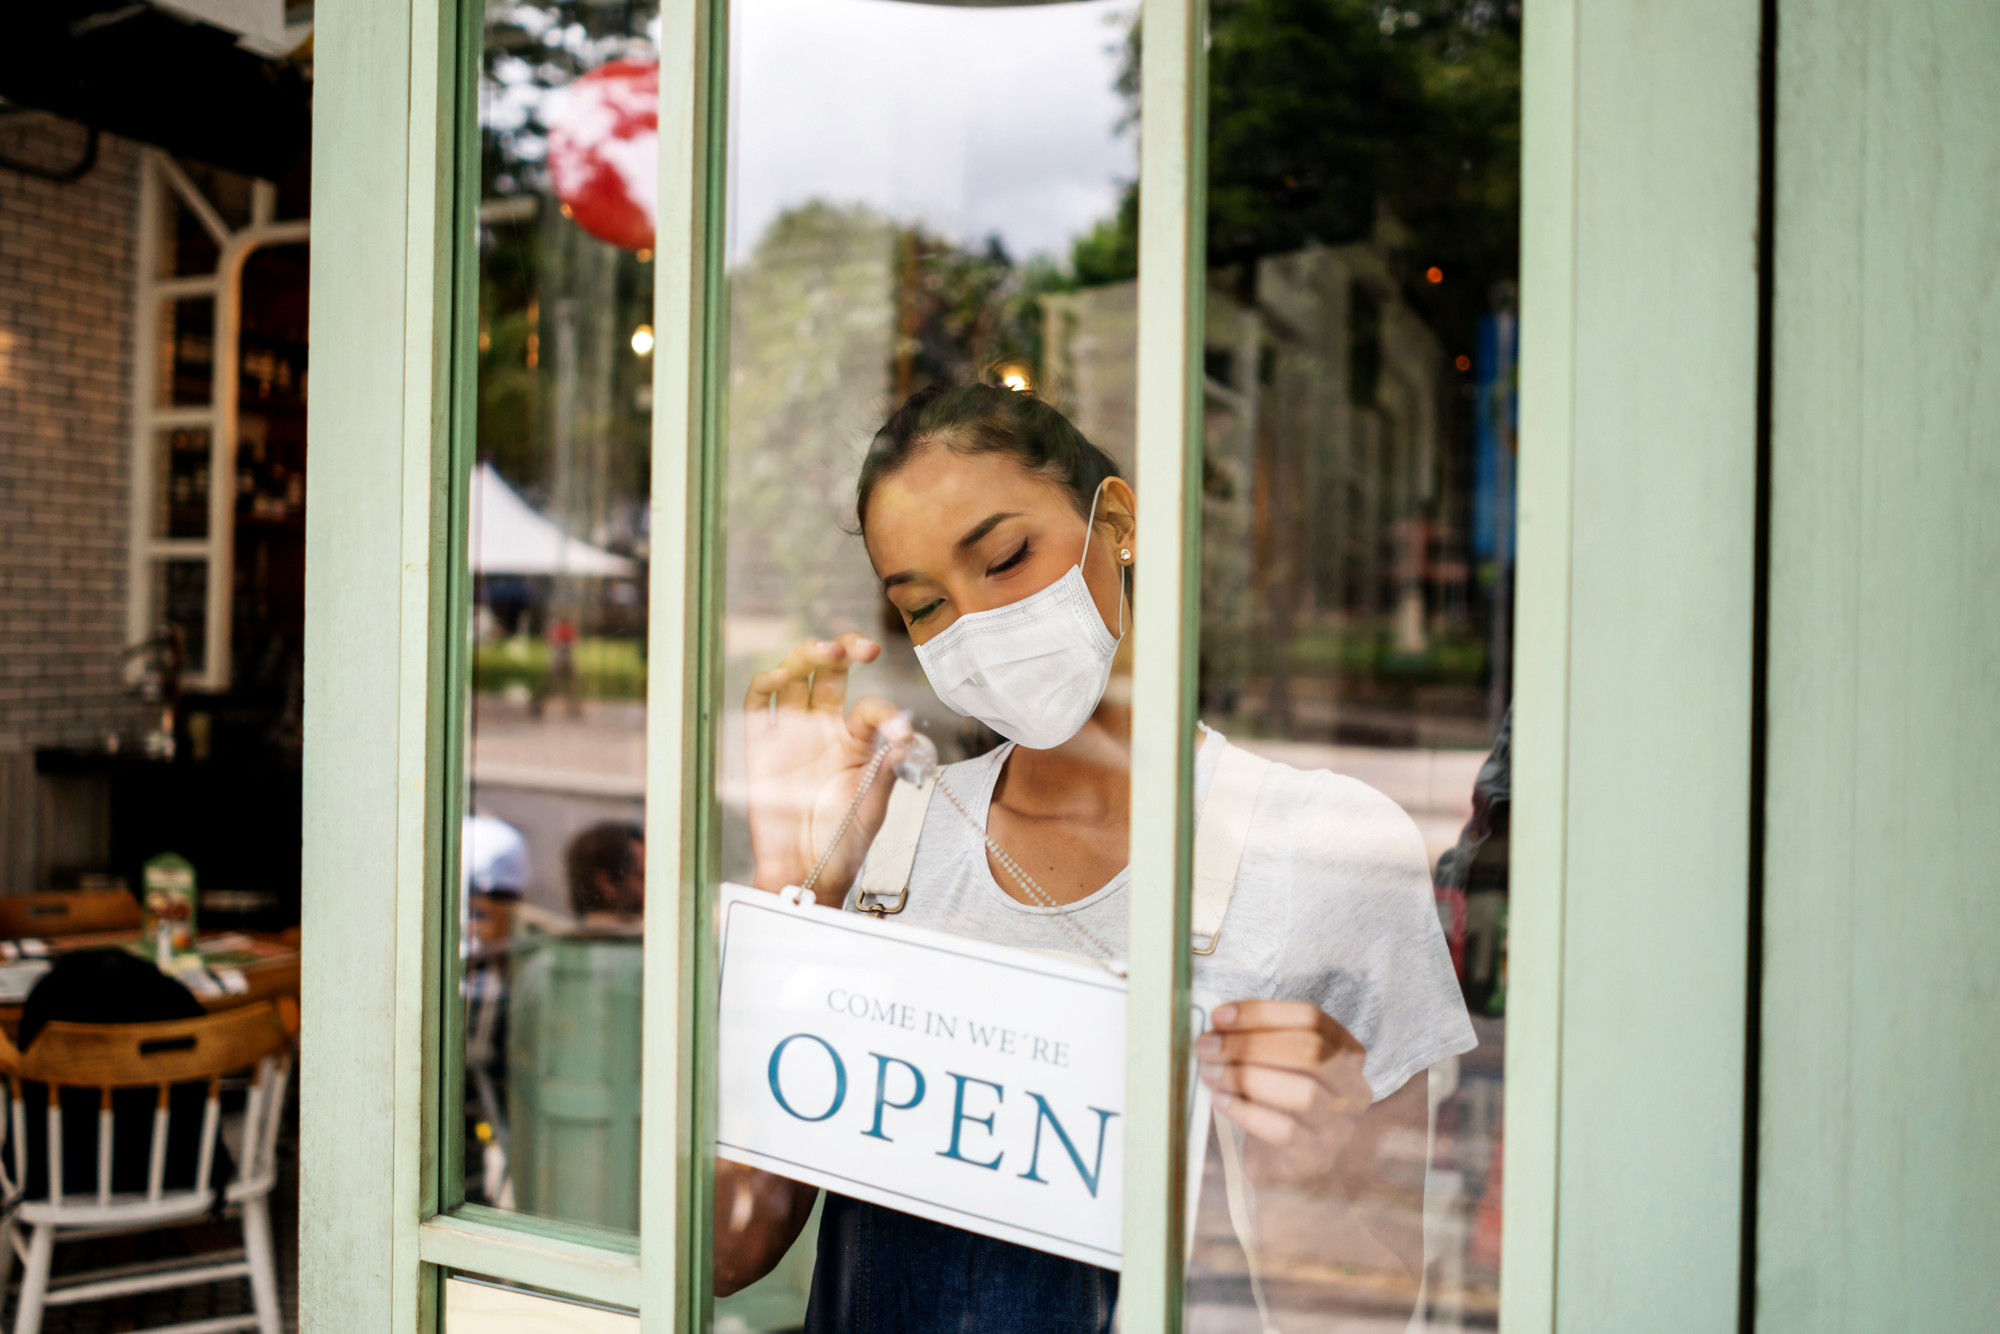 Restaurant employee hanging open sign, wearing a mask